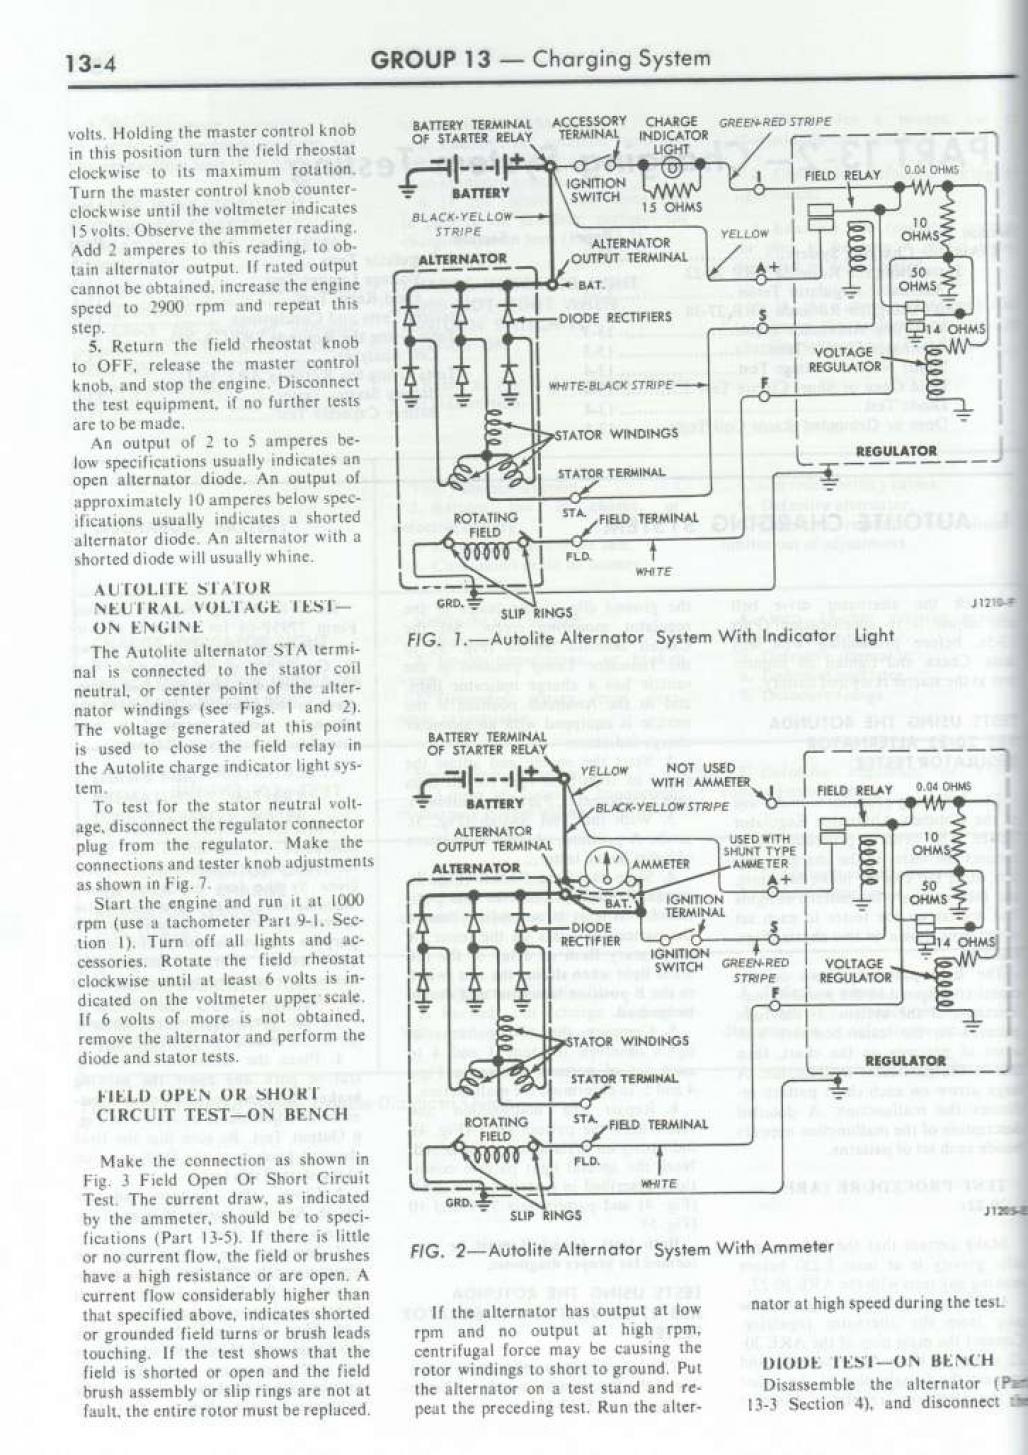 Ford Mustang Electrical Wiring Diagram